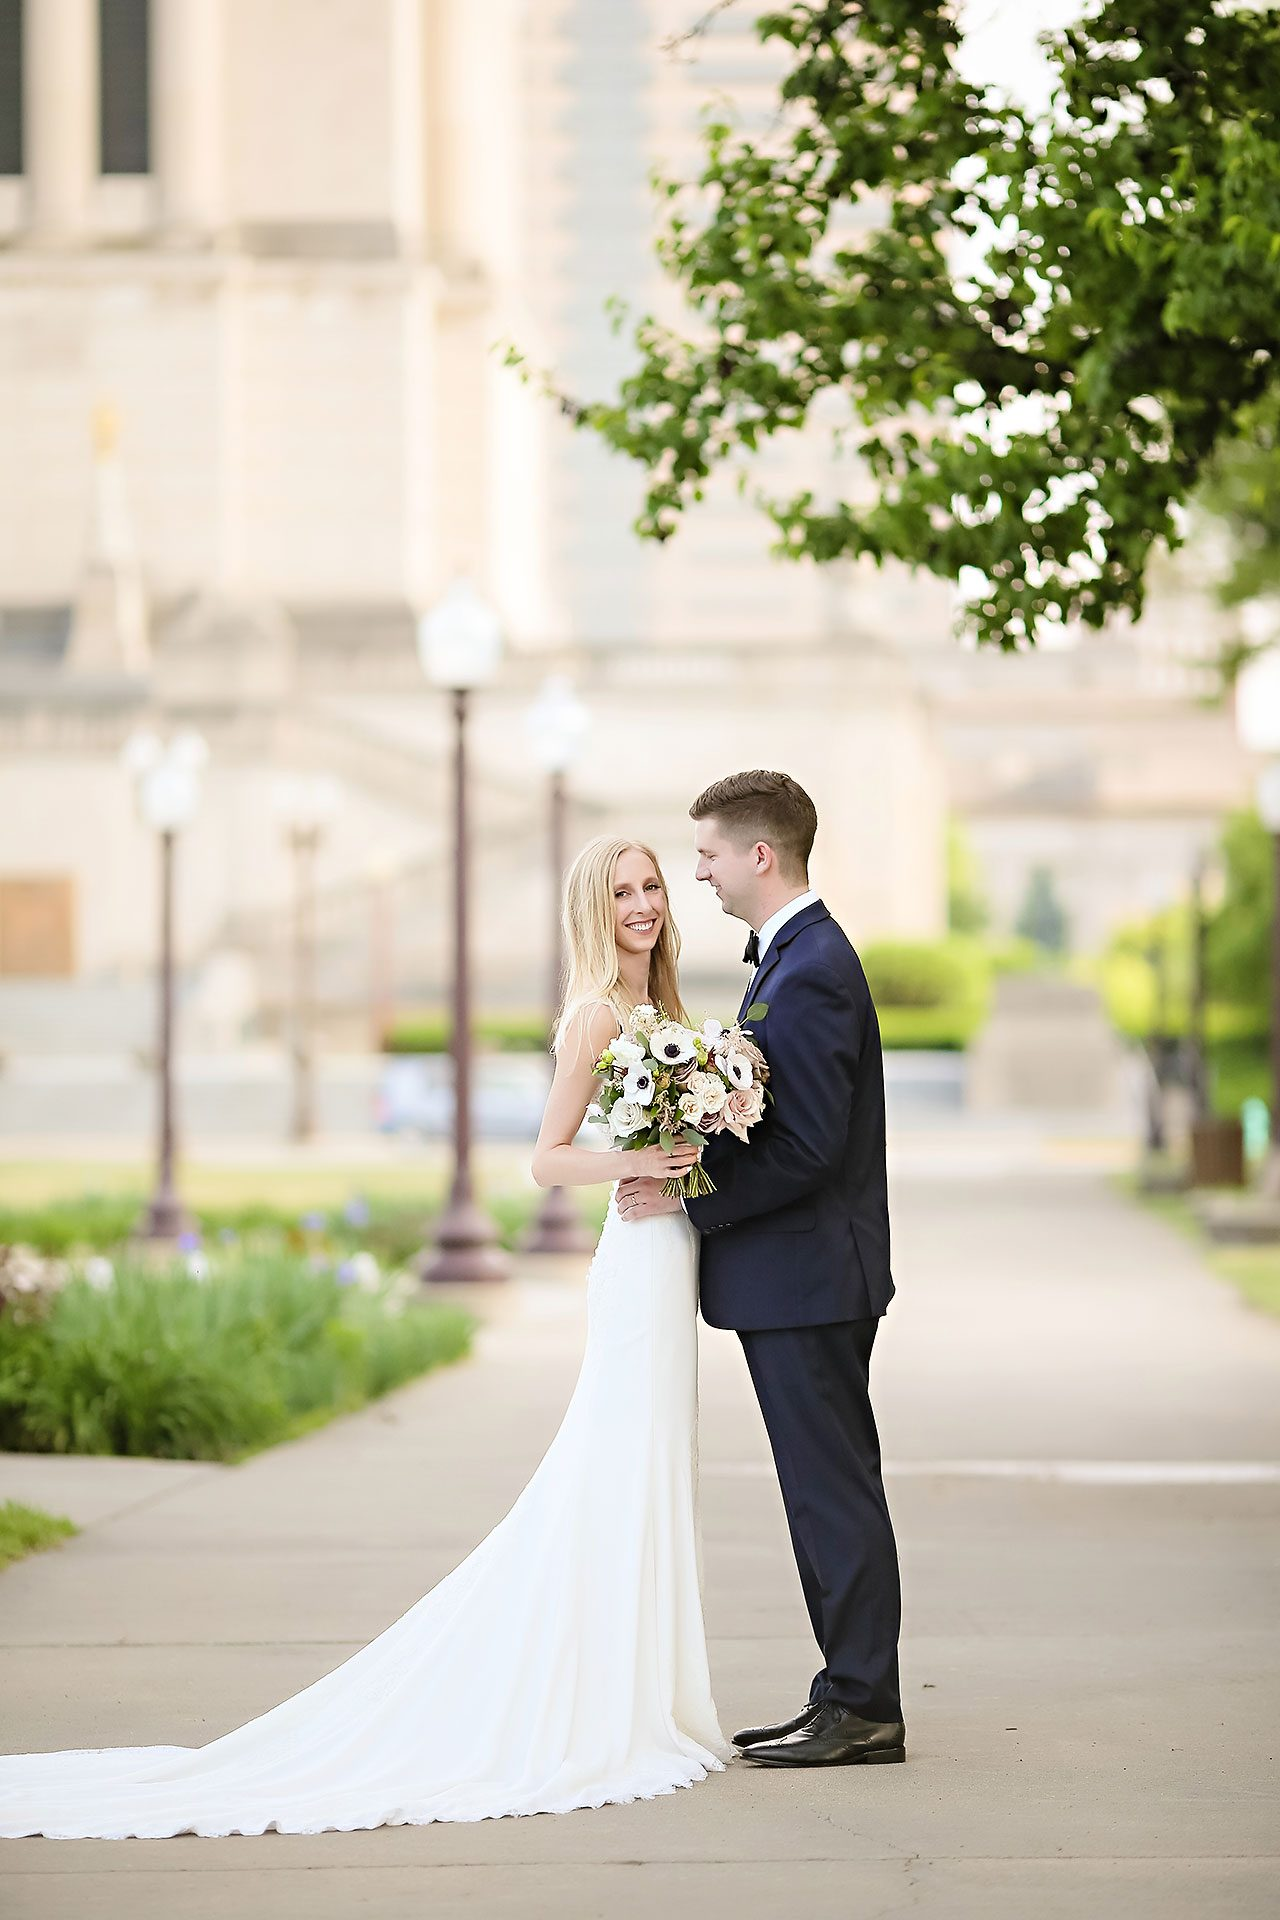 Molly Declan Scottish Rite Indianapolis Wedding 199